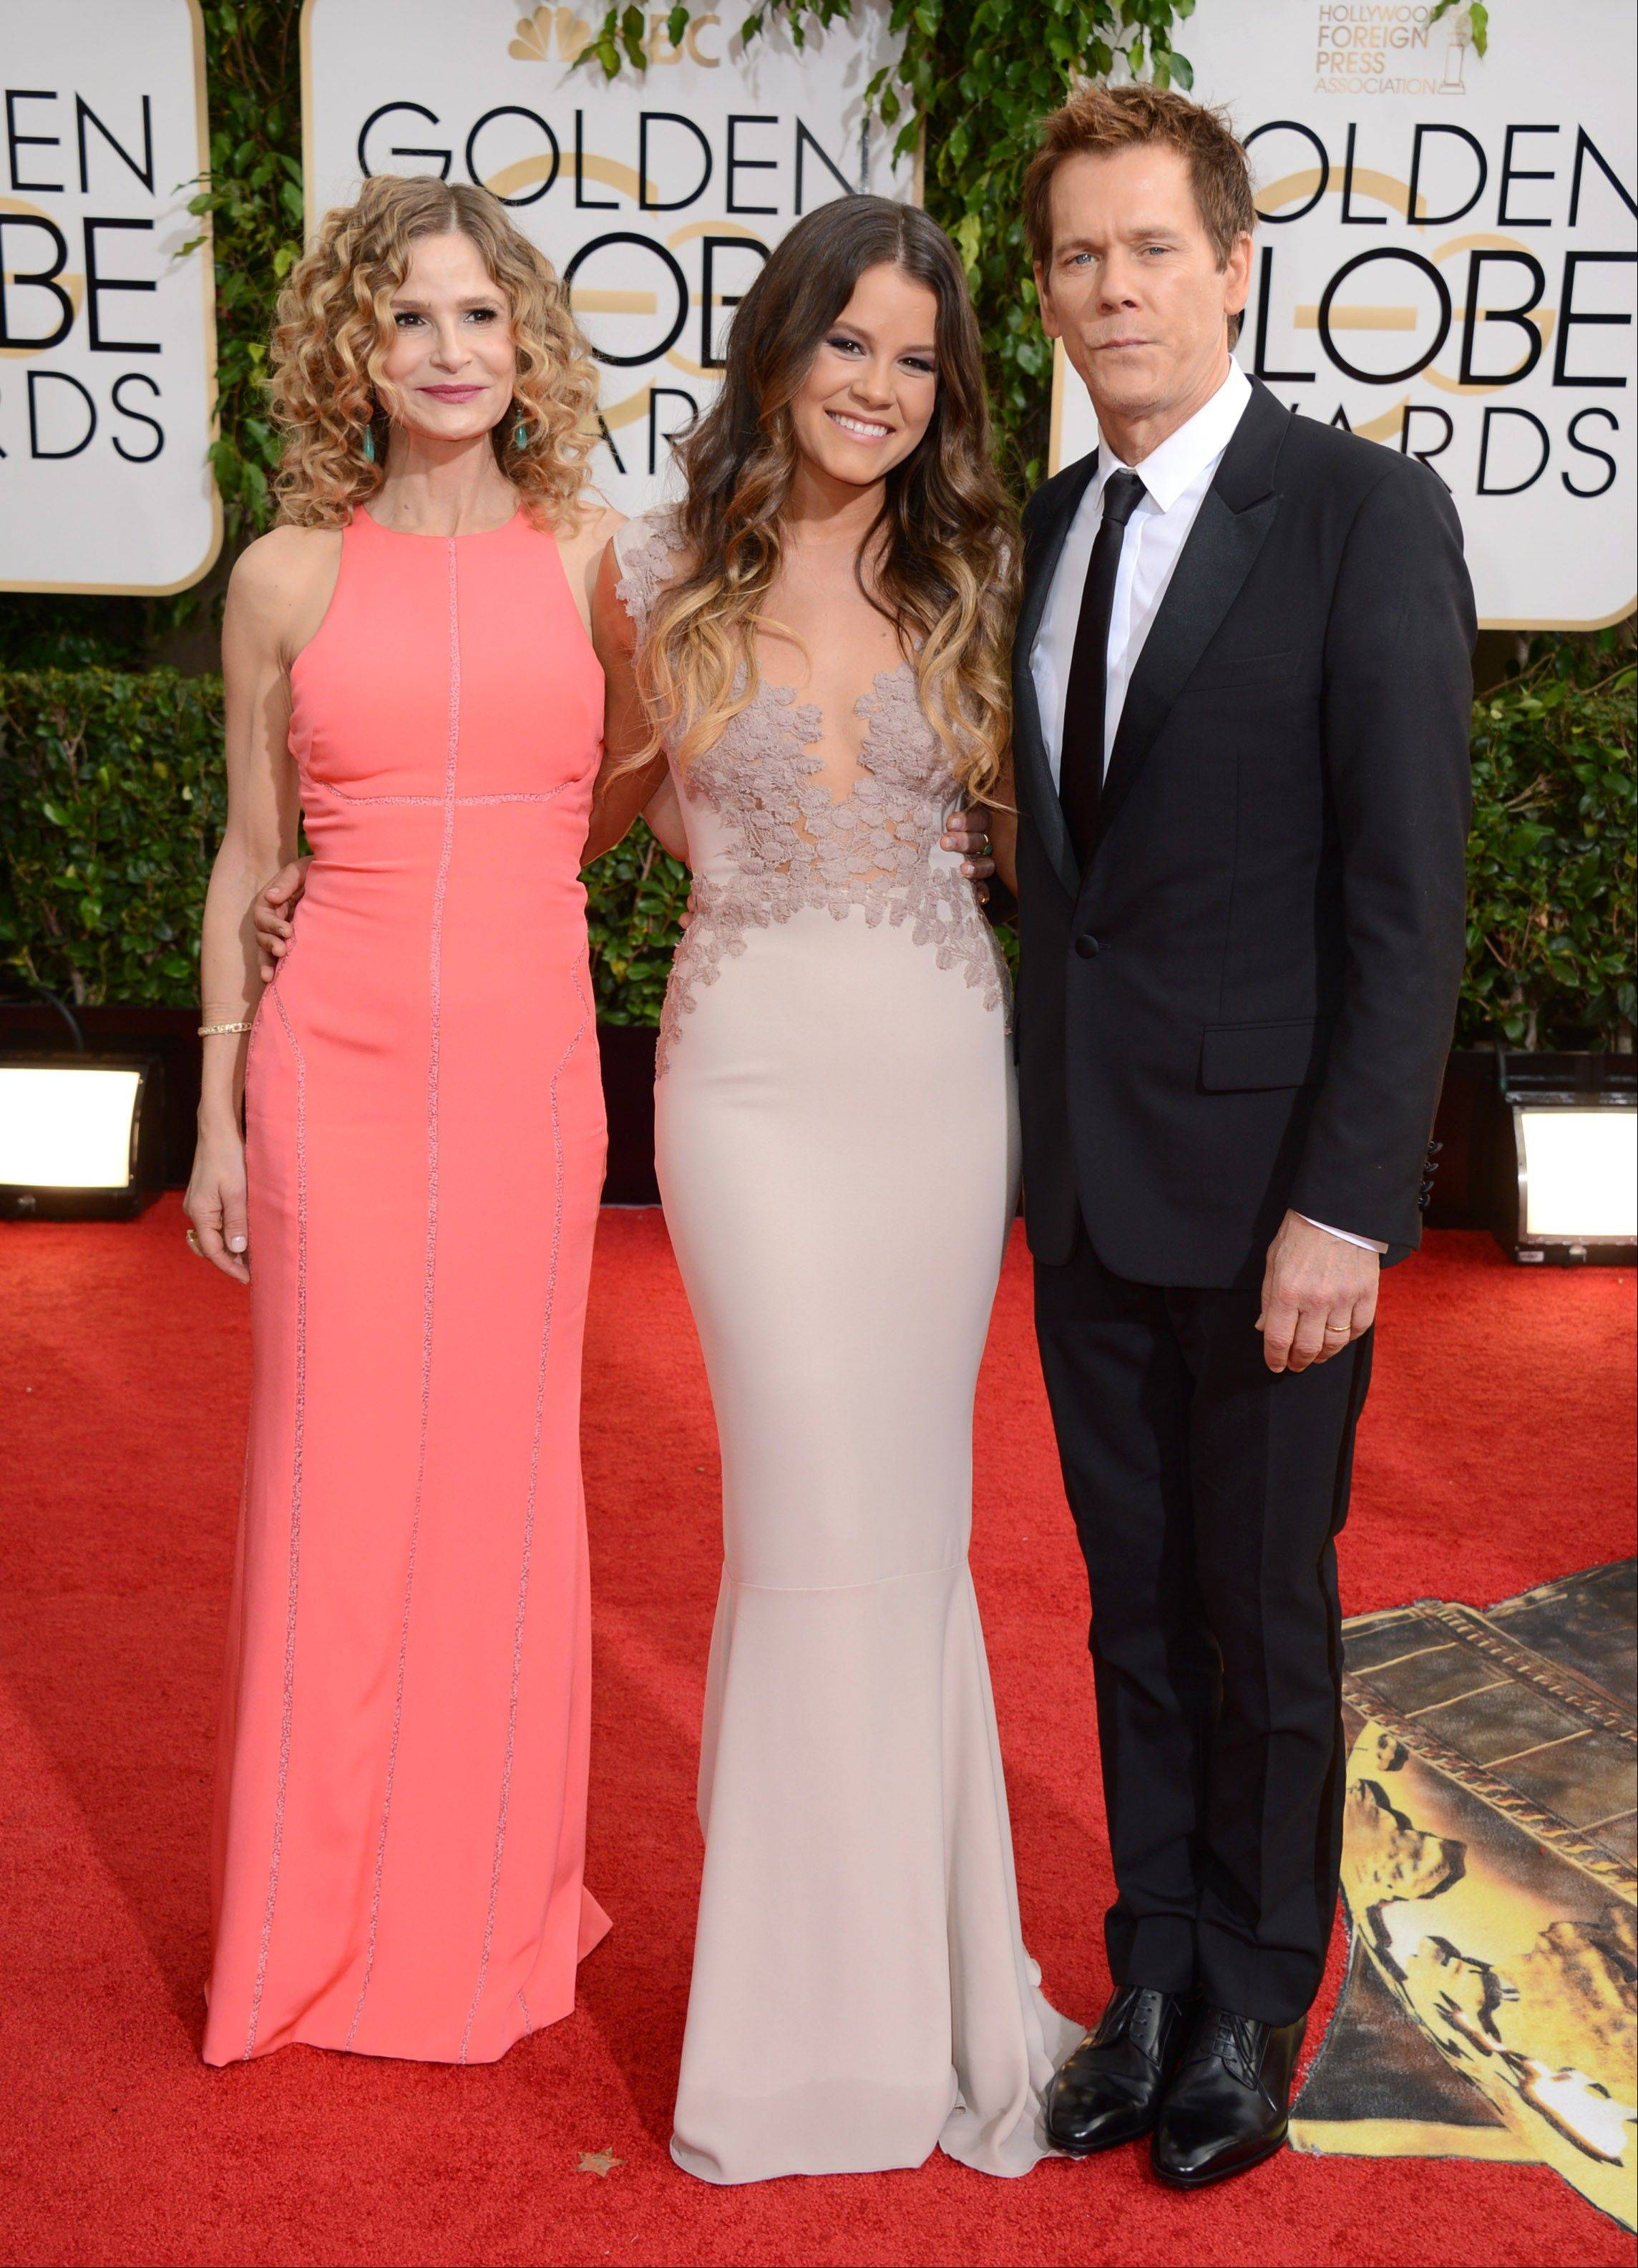 "Actress Kyra Sedgwick and her husband,""The Following"" star Kevin Bacon, walk the red carpet with their daughter Sosie Bacon, center, who is this year's Miss Golden Globe."